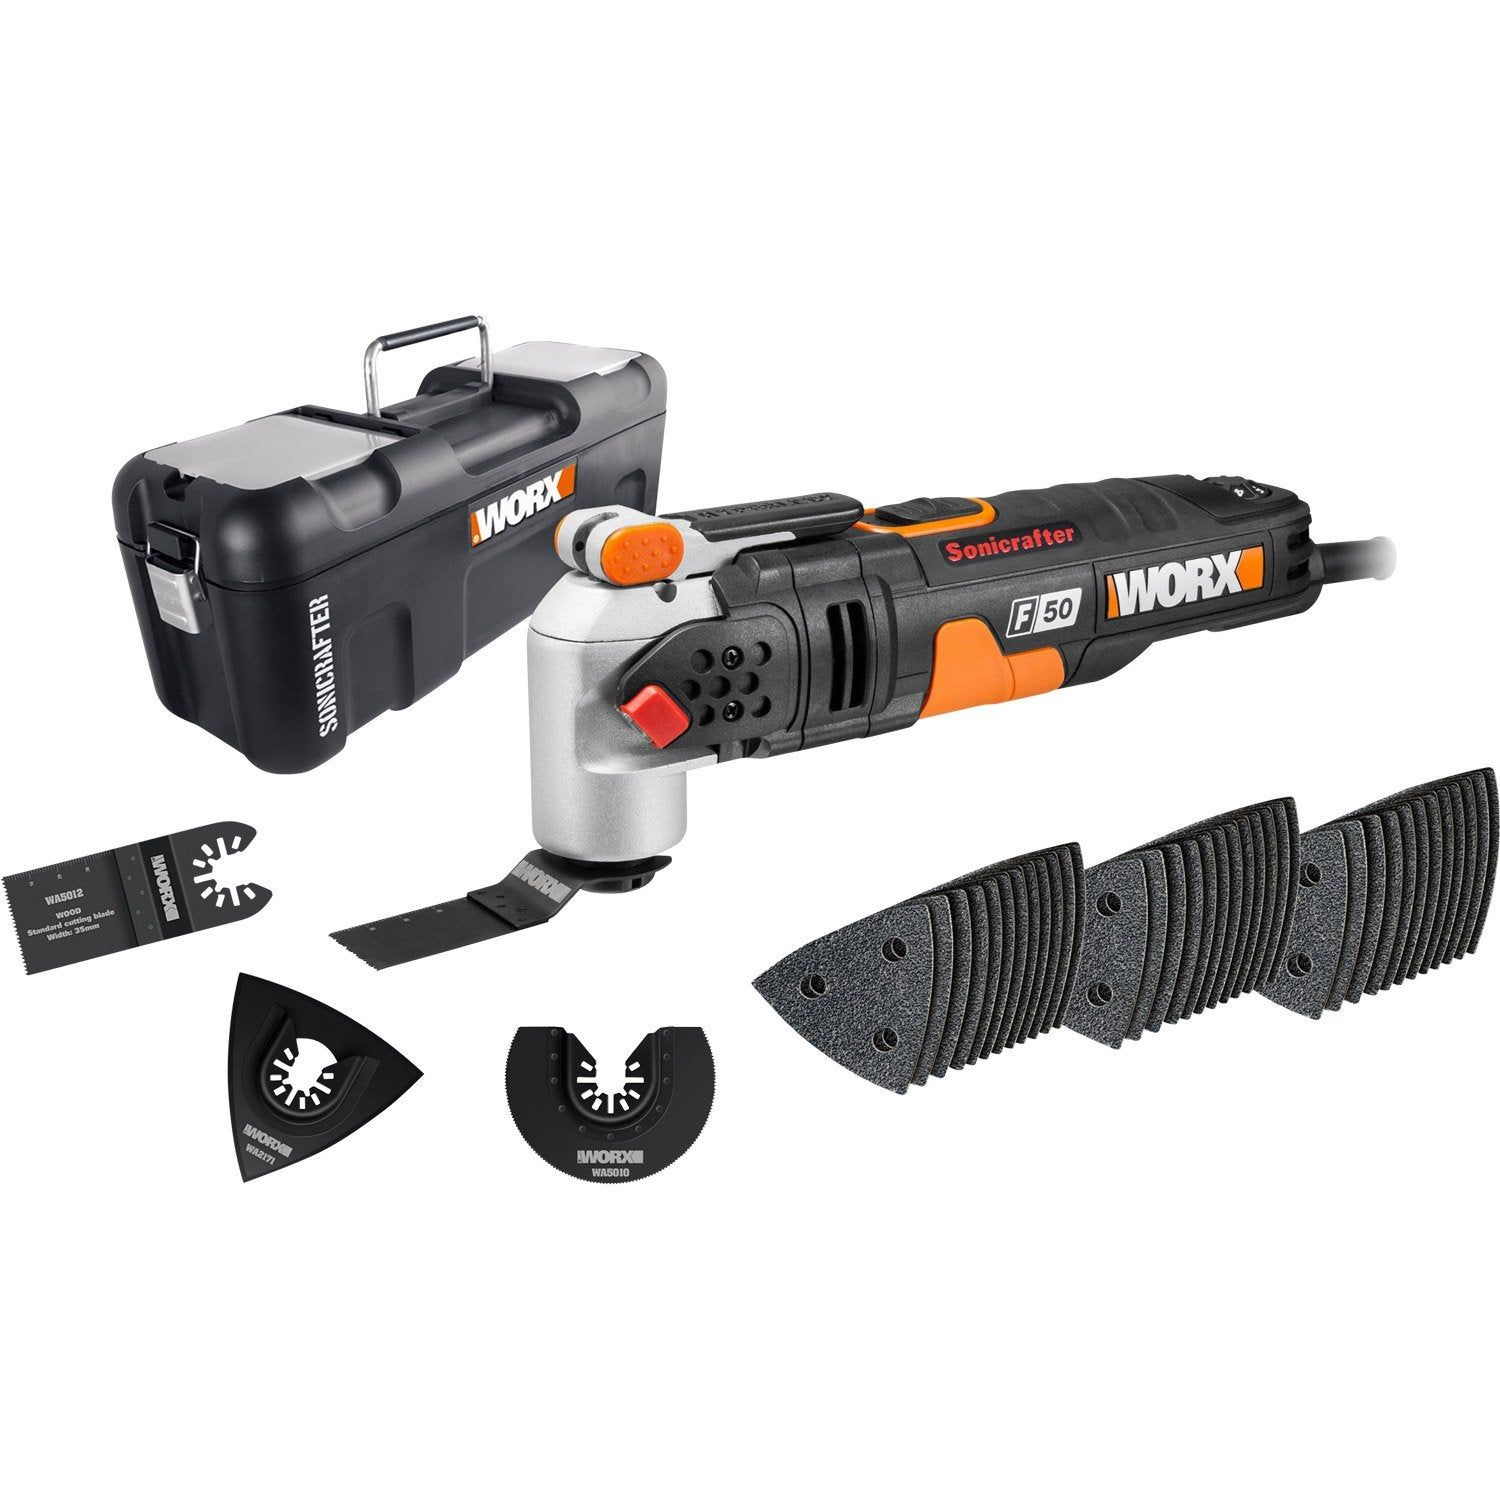 Outil Multifonction Worx Sonic F50 450 W Worx Outil Multifonction Multifonction Et Outils